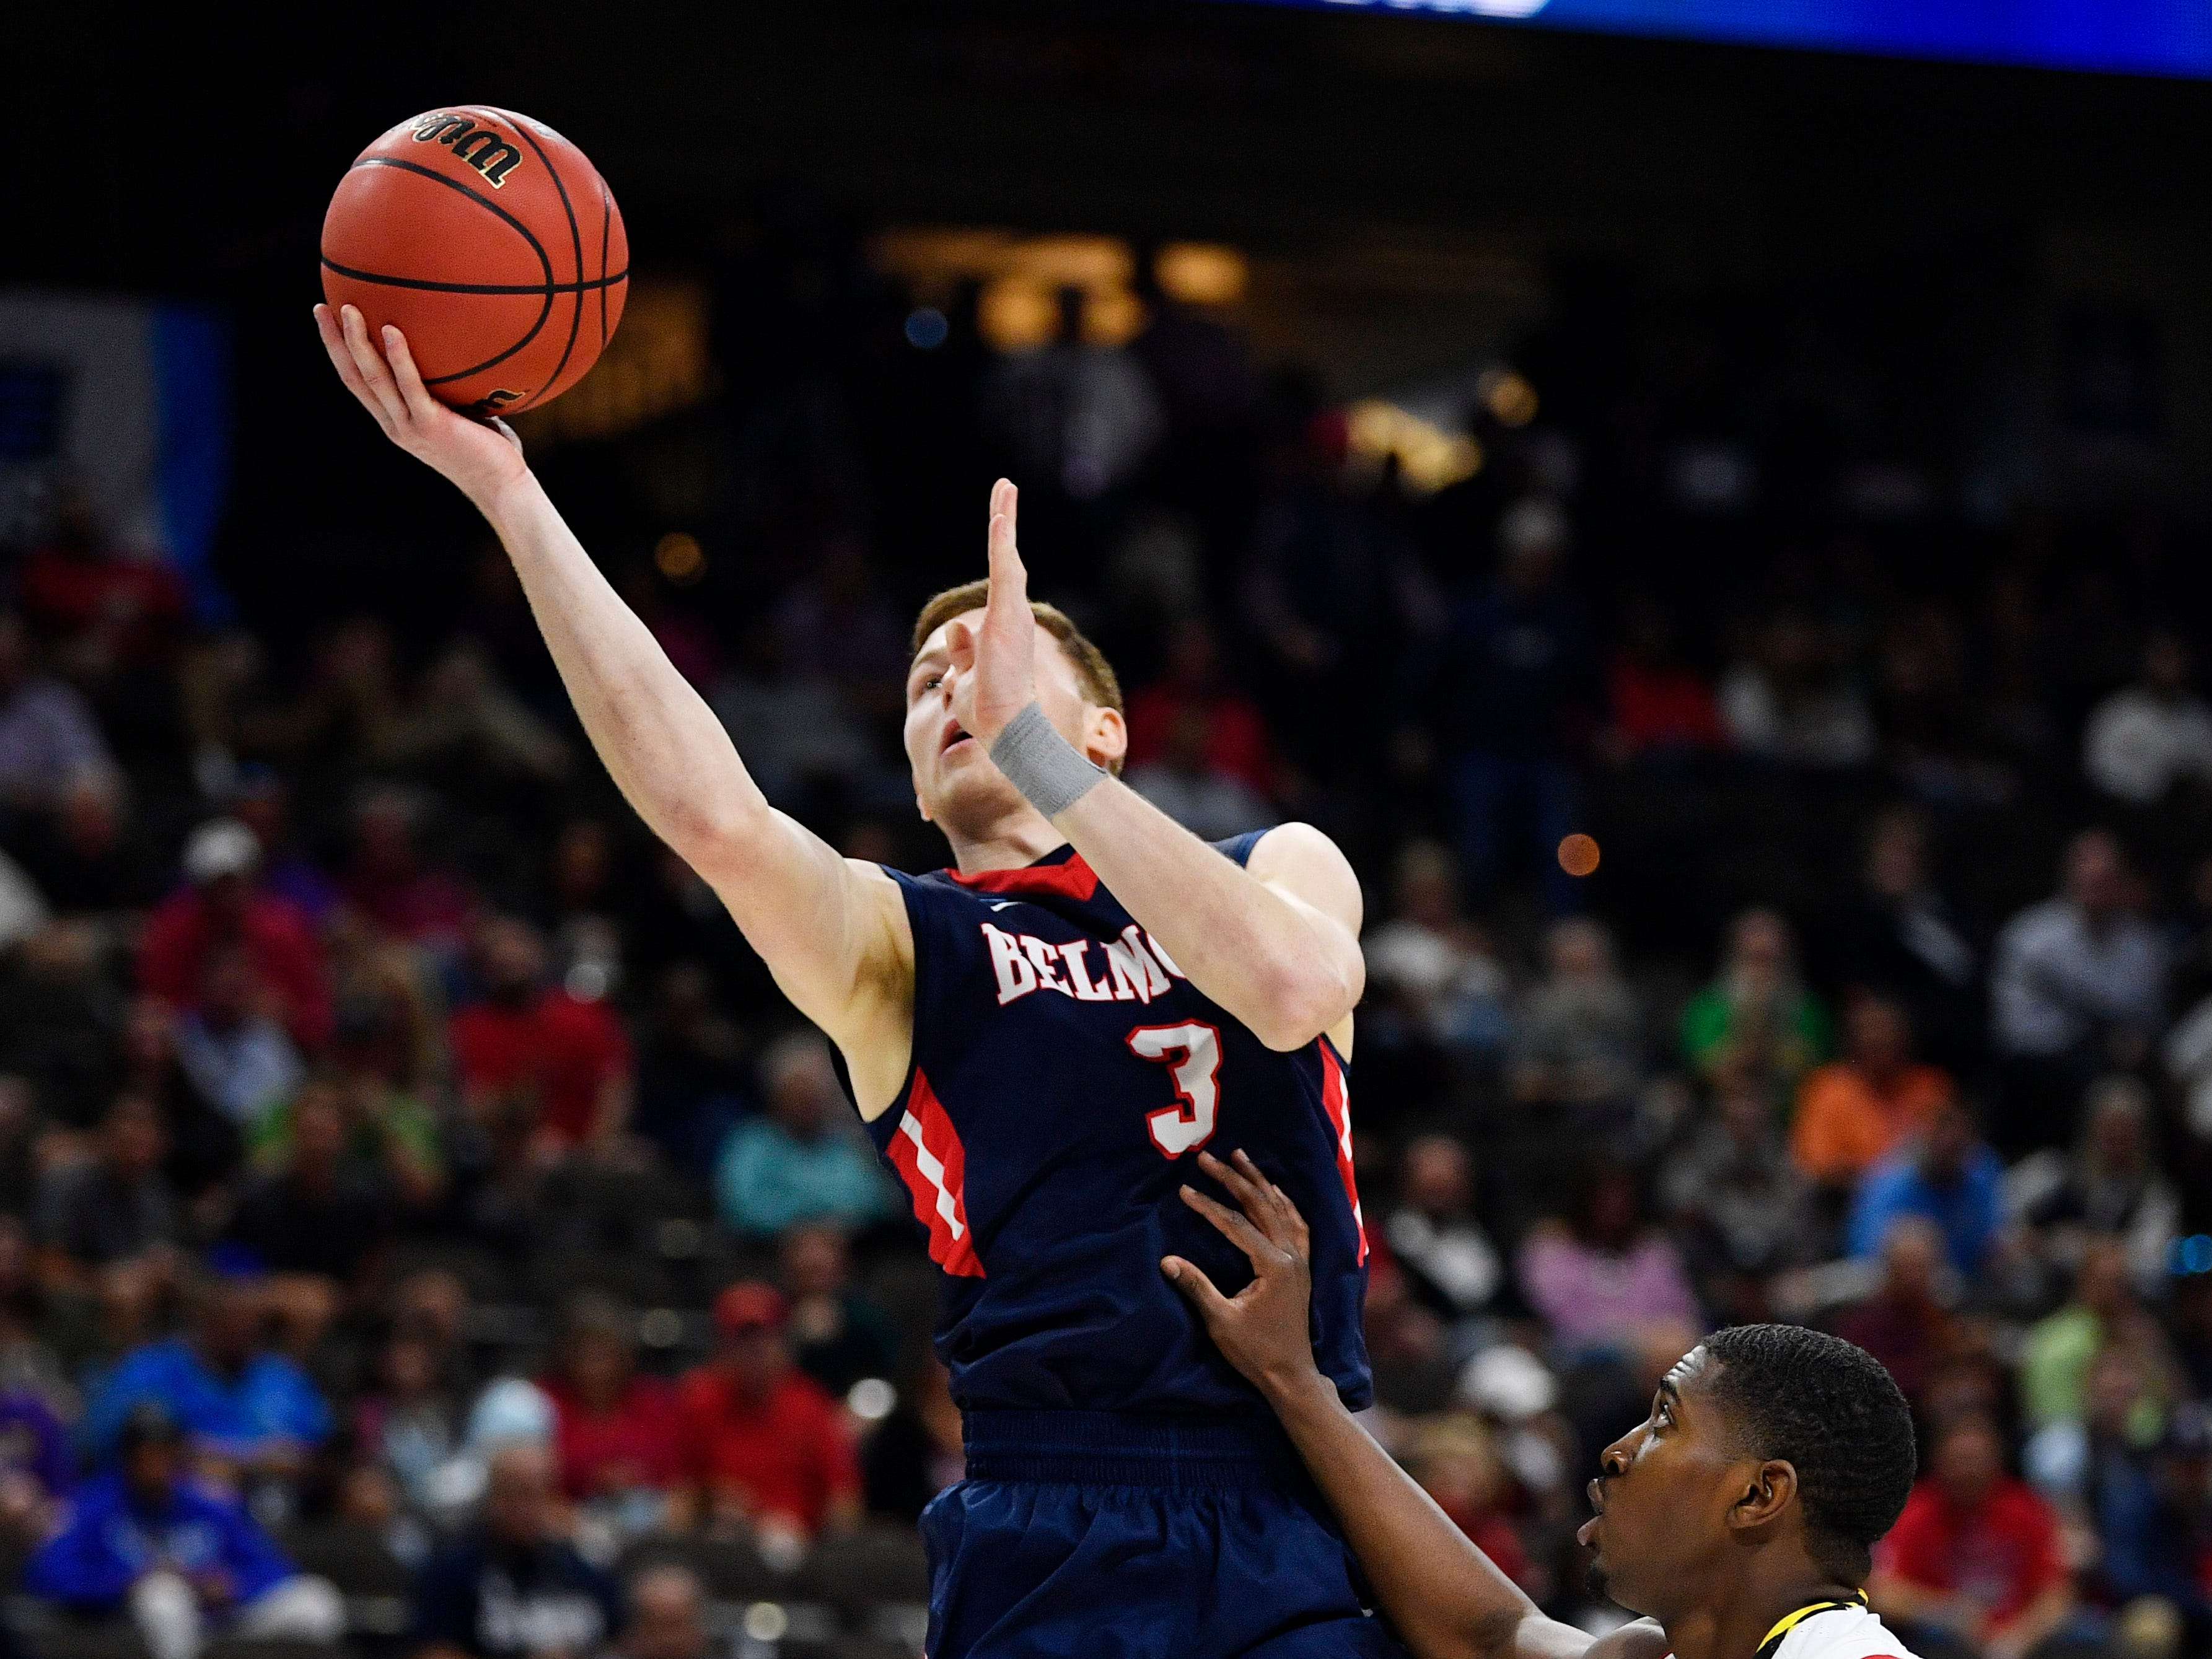 Belmont guard/forward Dylan Windler (3) goes to the basket defended by Maryland guard Darryl Morsell (11) during the first half of the first-round NCAA college basketball tournament game at VyStar Veterans Memorial Arena in Jacksonville, Fla., Thursday, March 21, 2019.